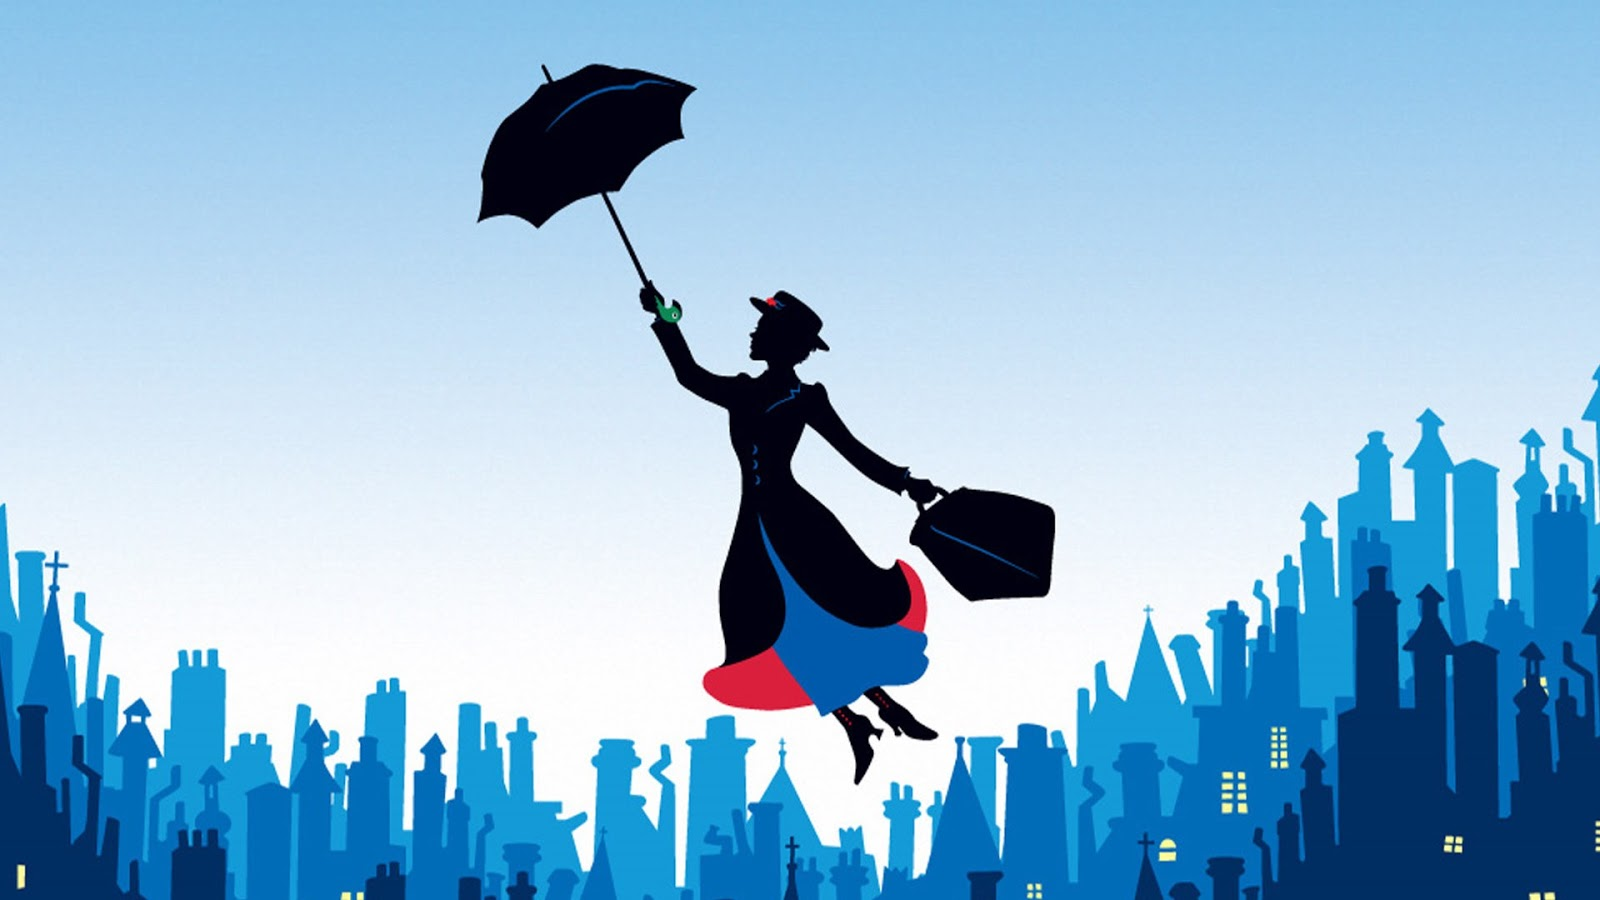 [Jeu] Association d'images - Page 5 Mary-poppins